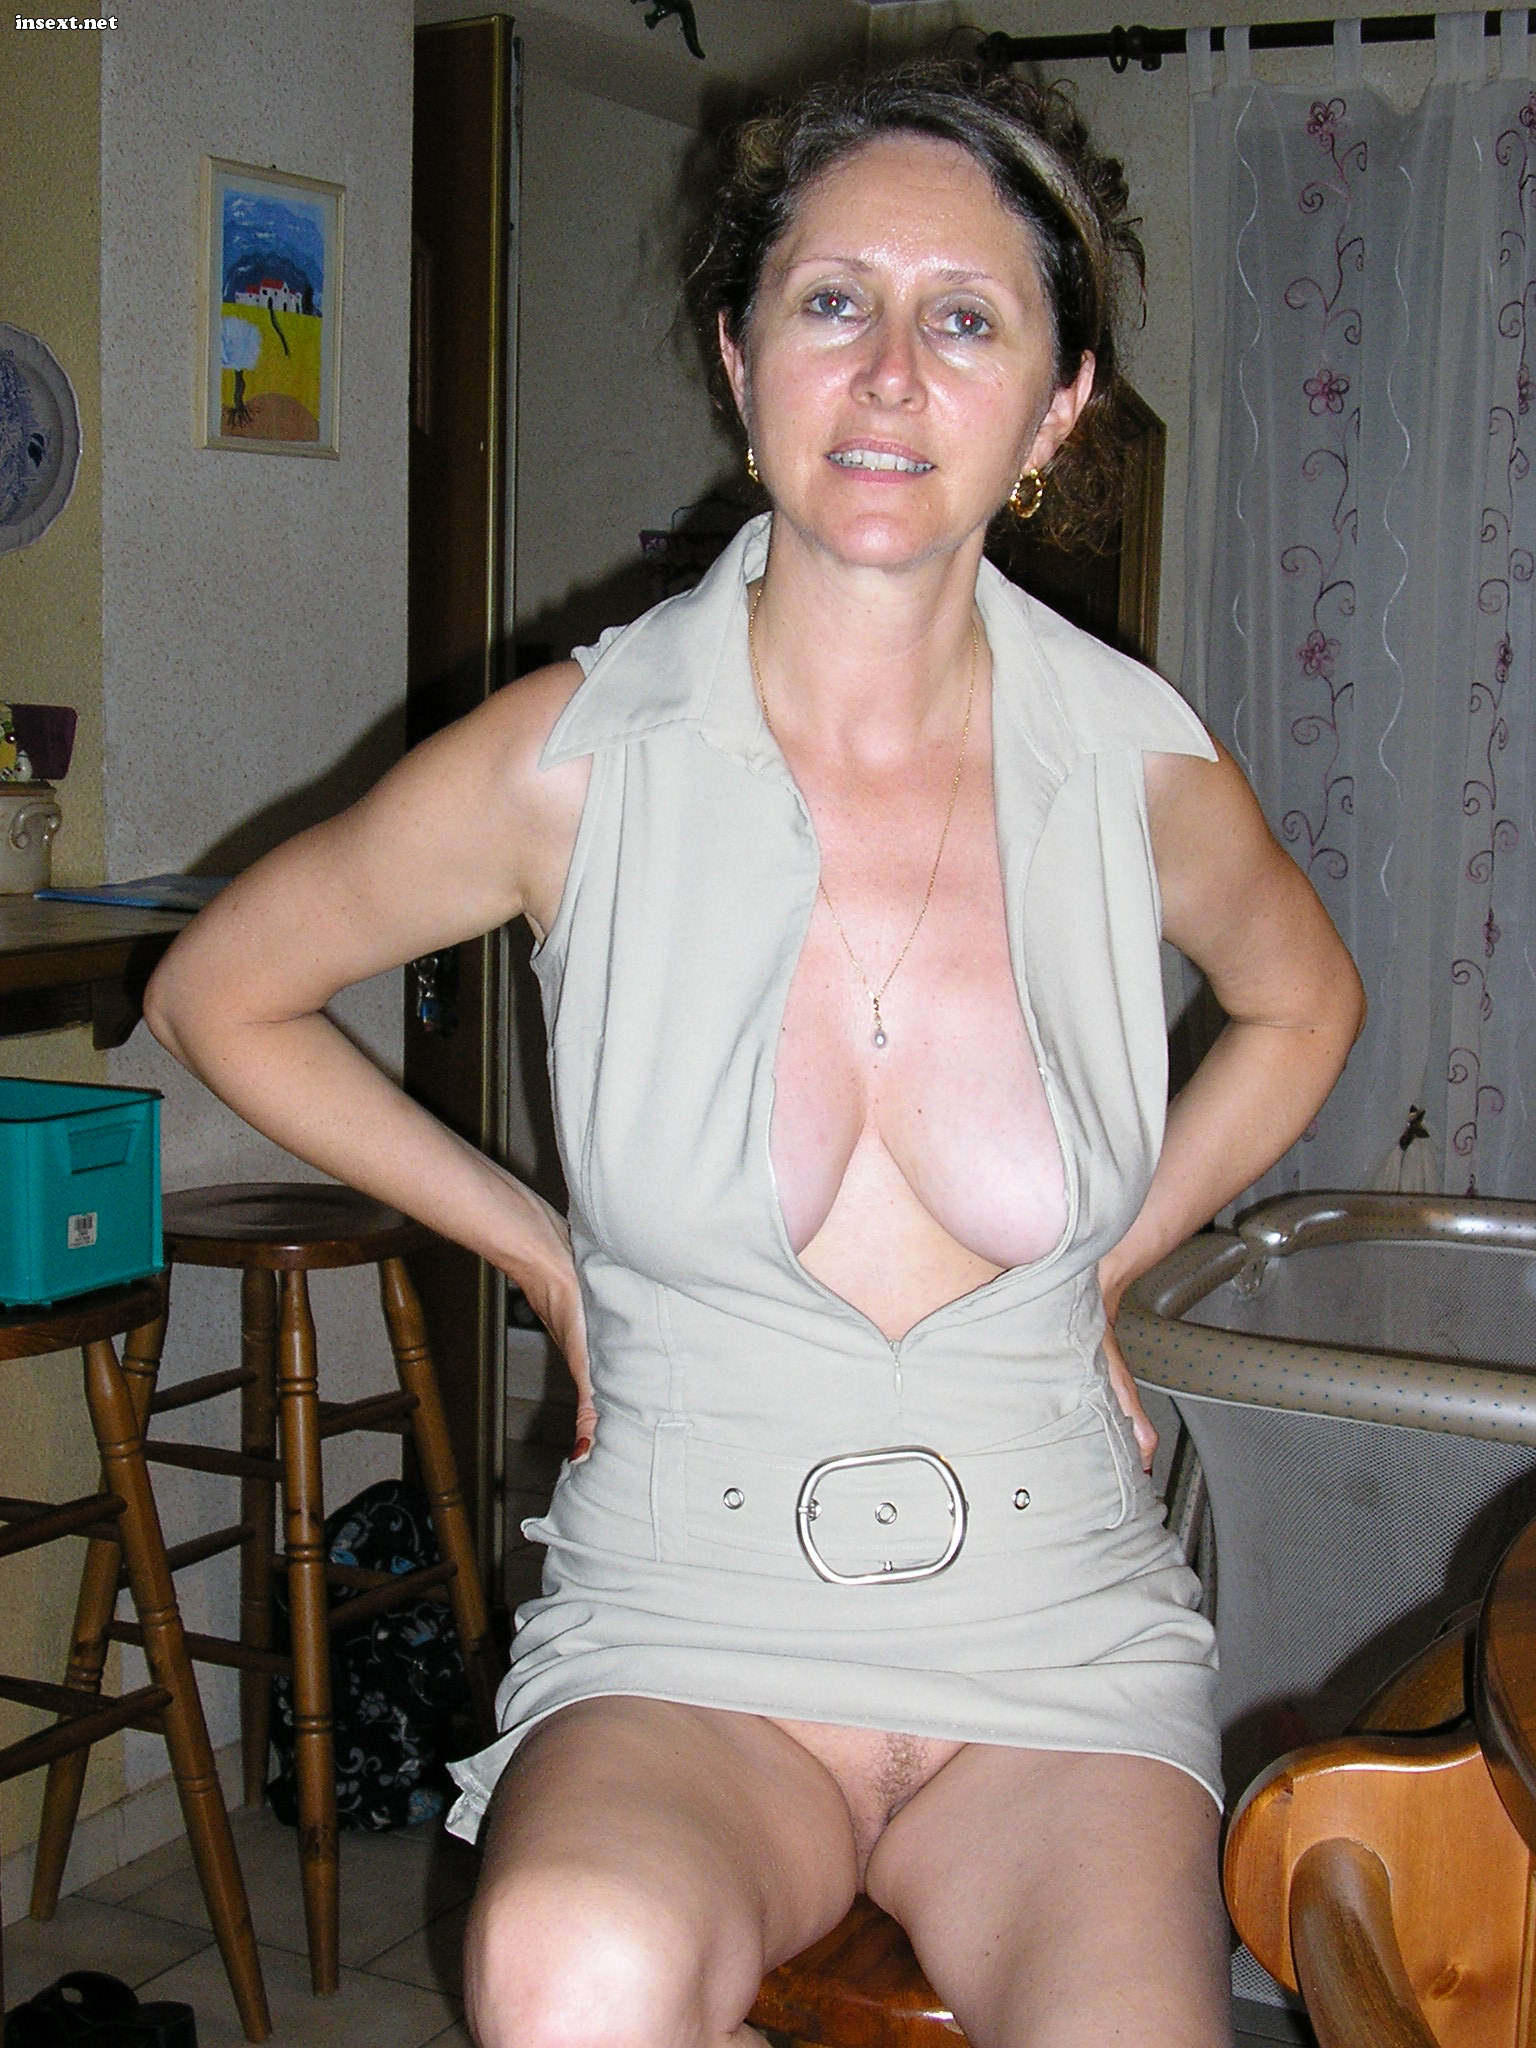 mature mom on all fours-naked photo